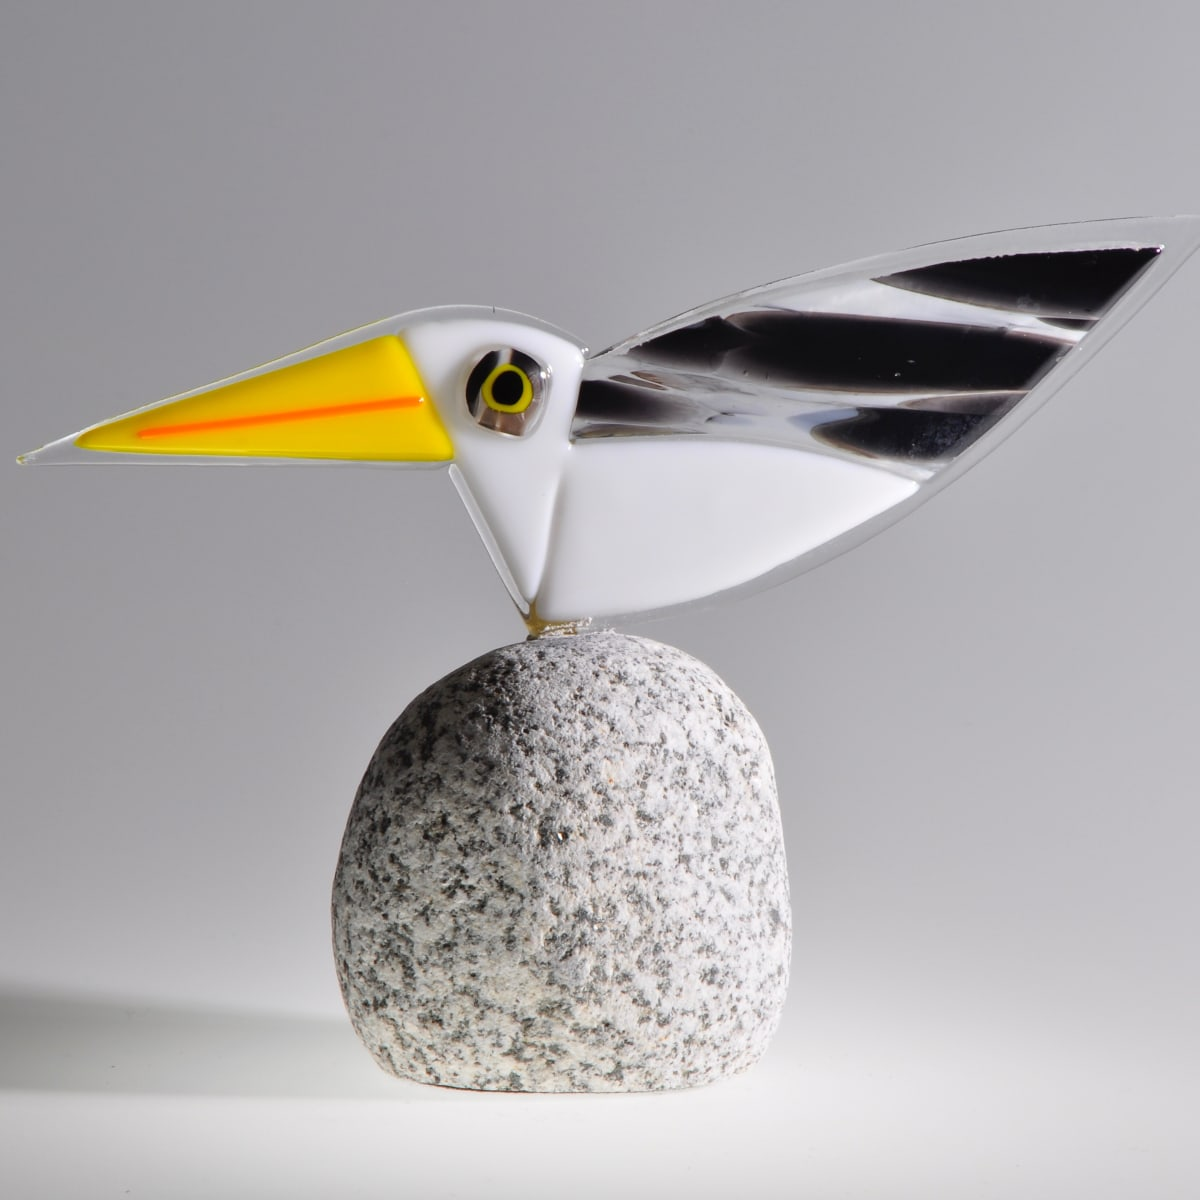 CHA164, Rare Bird No.31 by Paul Chave